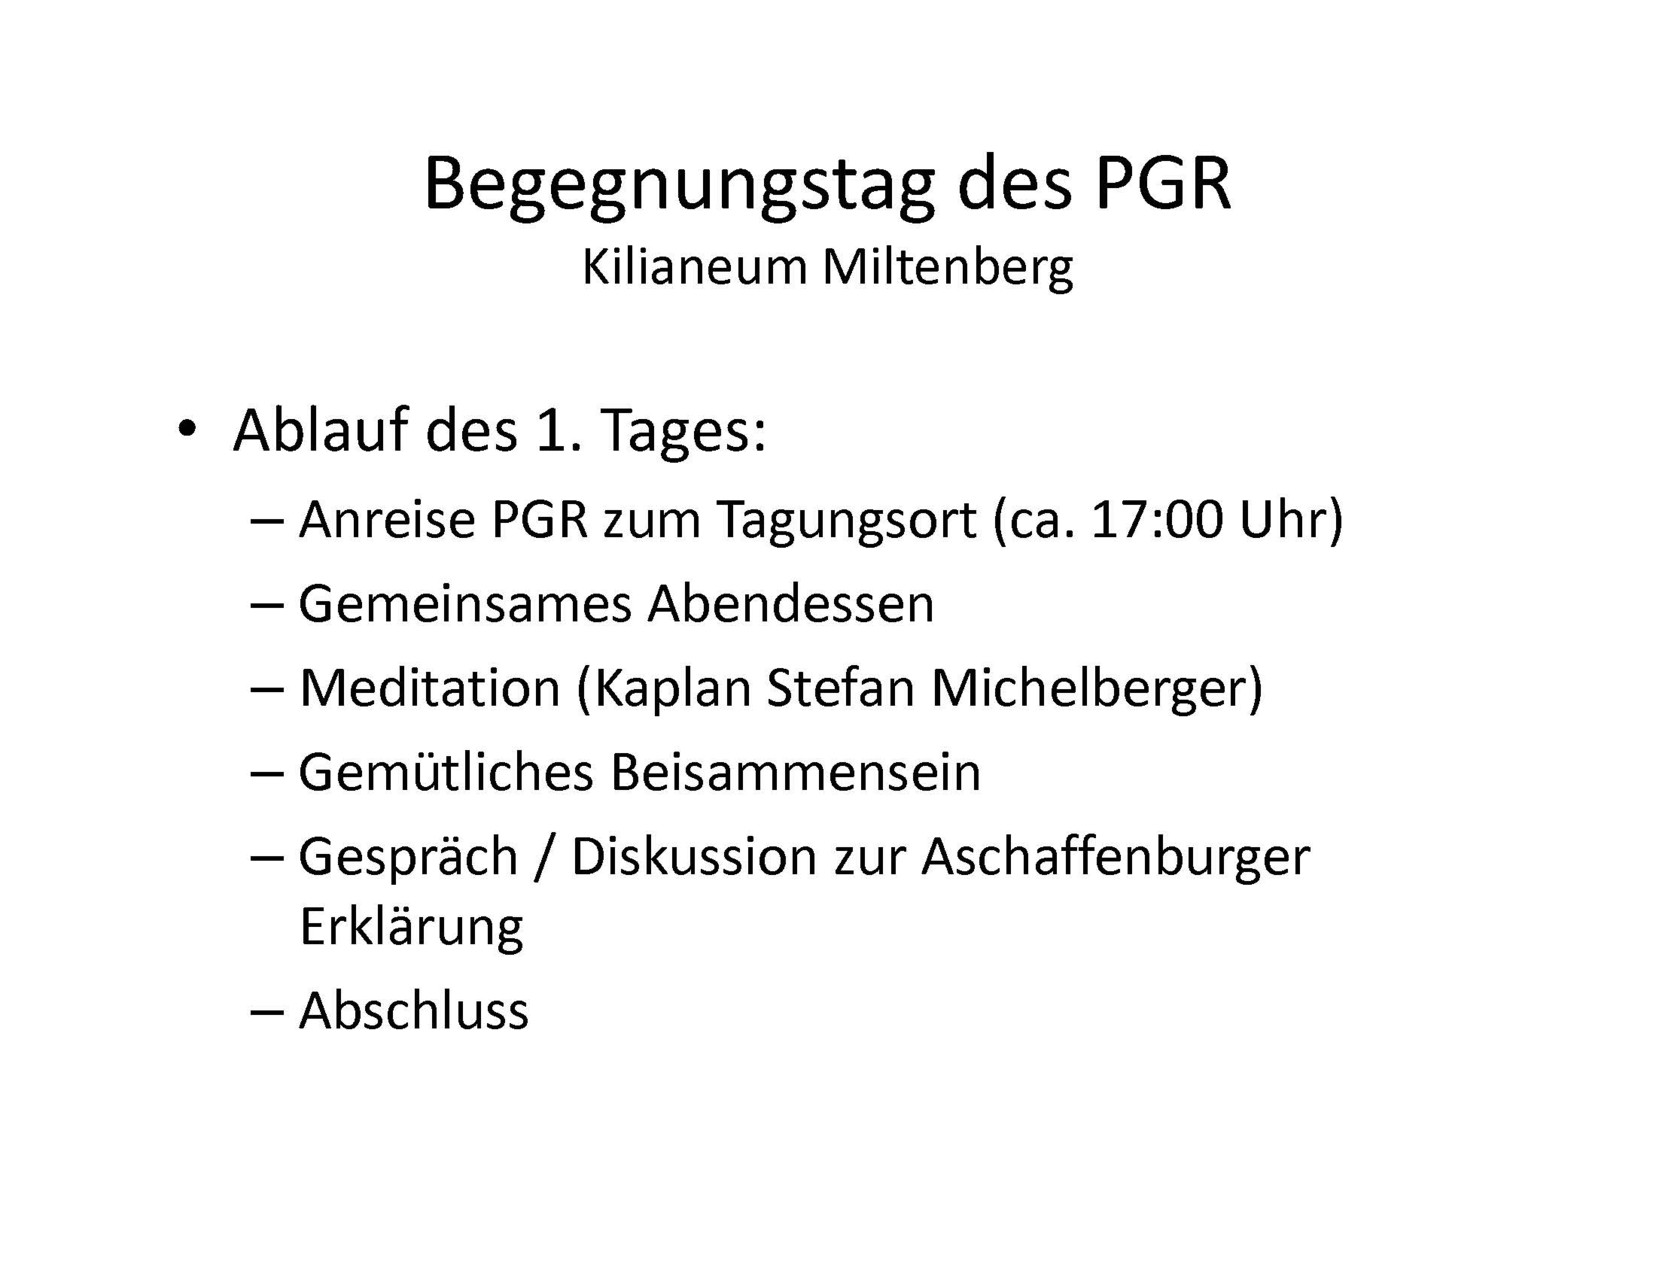 Begegnungstag im November 2011 in Miltenberg